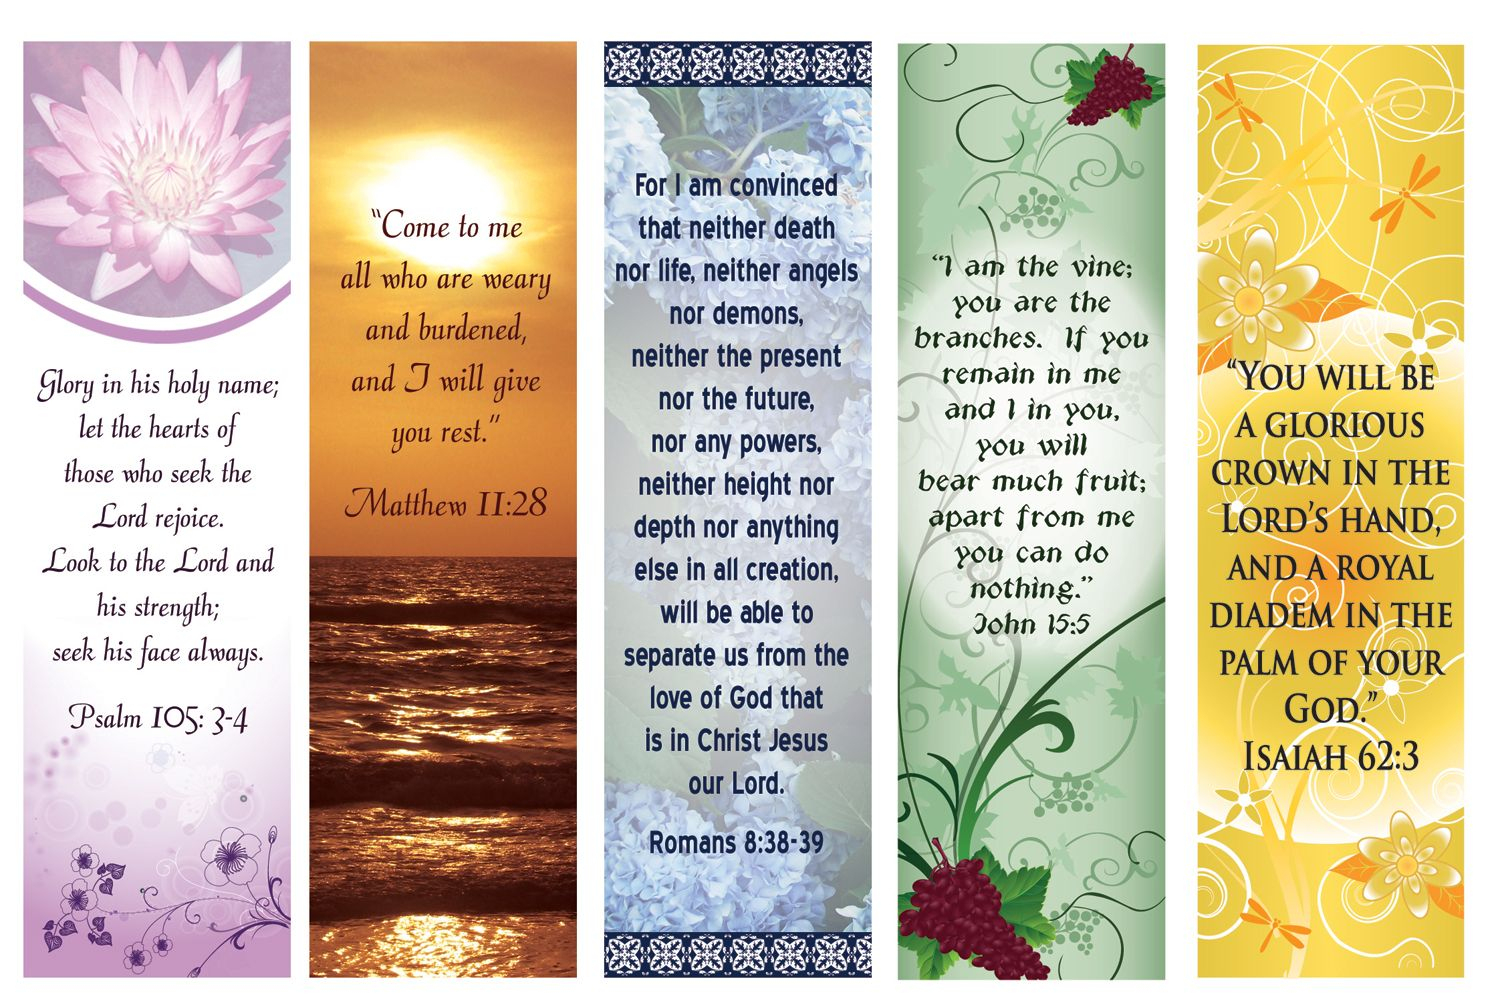 Free Printable Bookmarks With Bible Verses | Bookmarks | Pinterest - Free Printable Bookmarks With Bible Verses